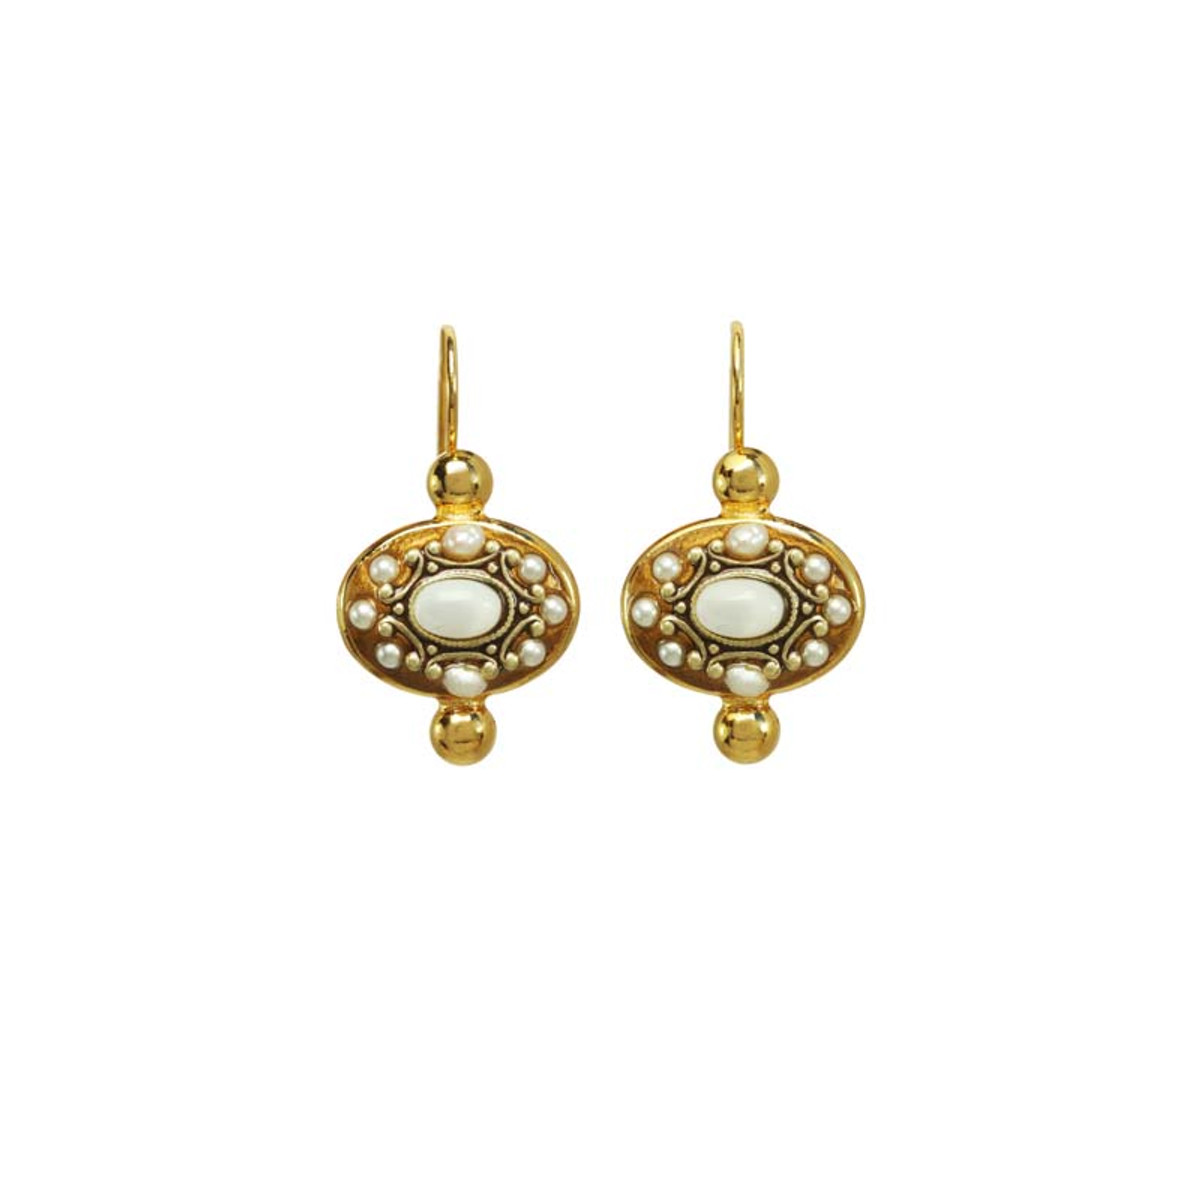 Michal Golan Jewelry Elegante White Earrings